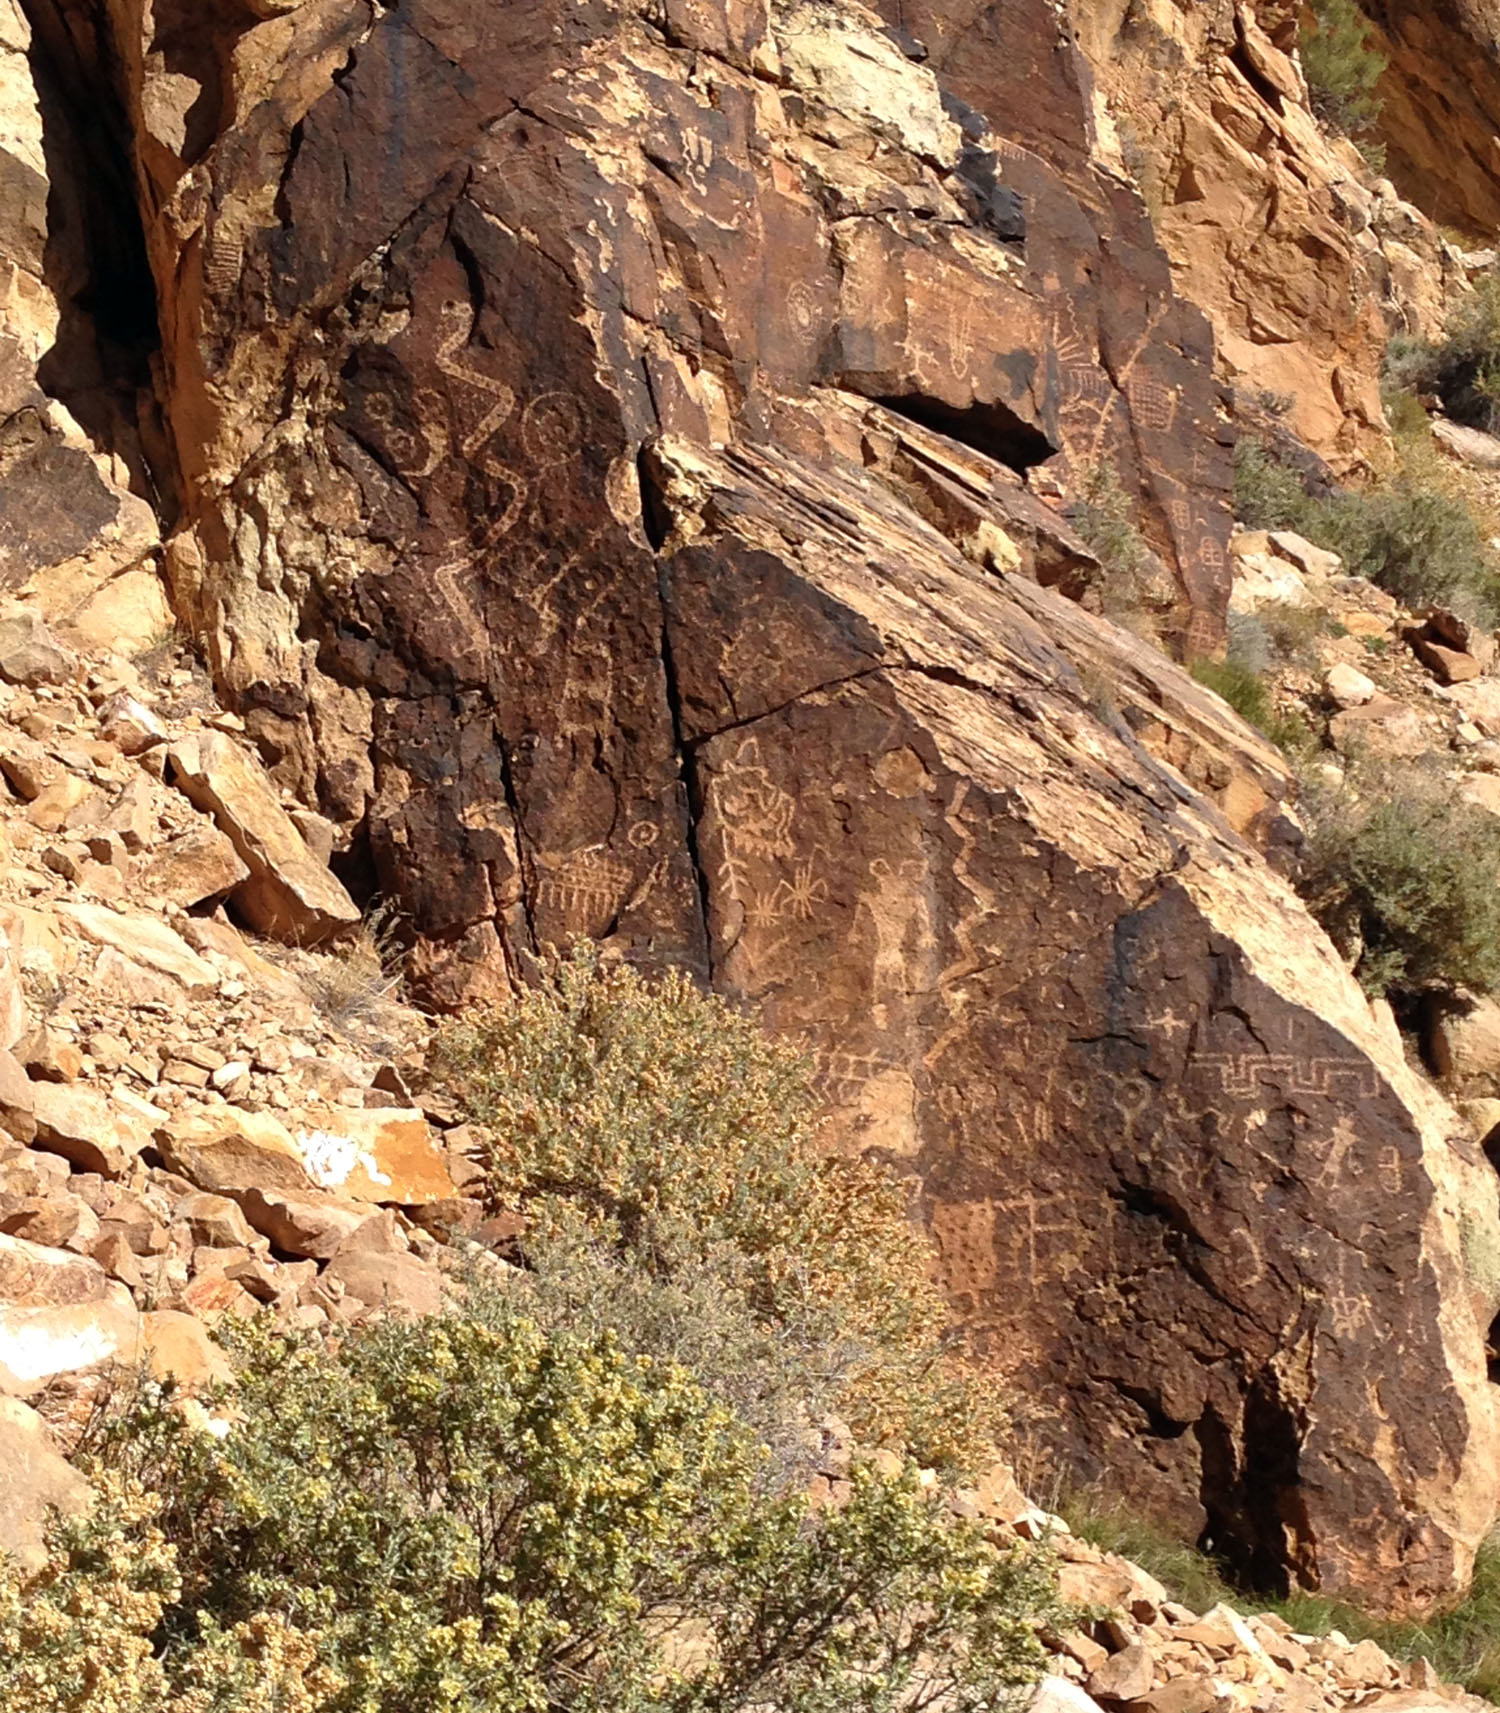 Old Spanish Trail pictographs IMG_3554.JPG